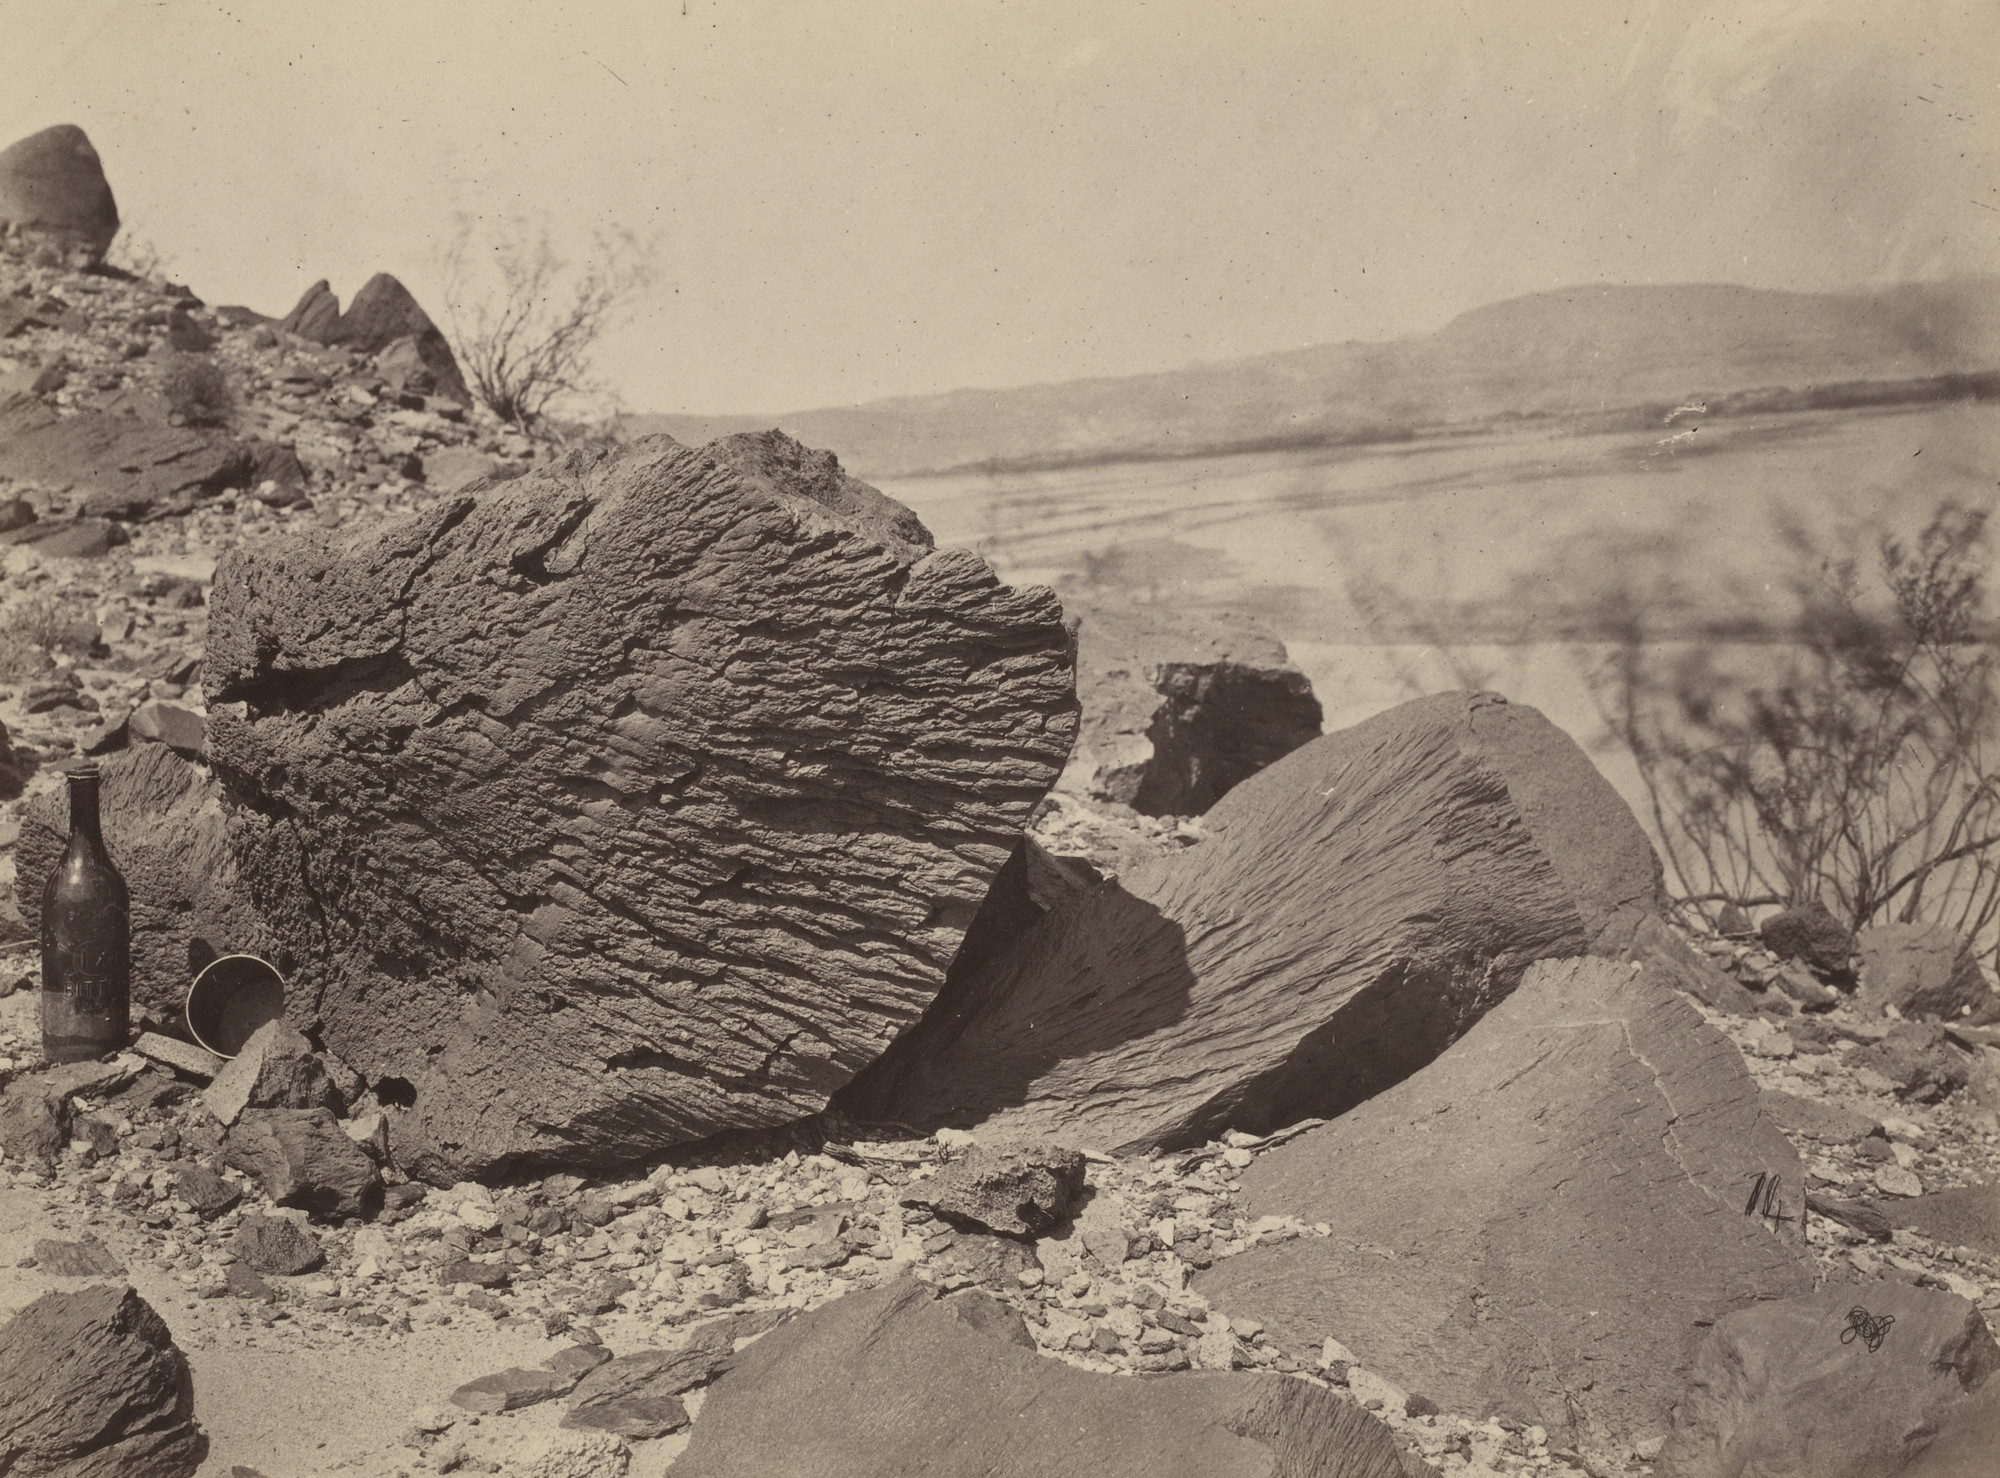 Timothy O'Sullivan. Rock Carved by Drifting Sand, Below Fortification Rock, Arizona. Seasons of 1871, 1872 and 1873